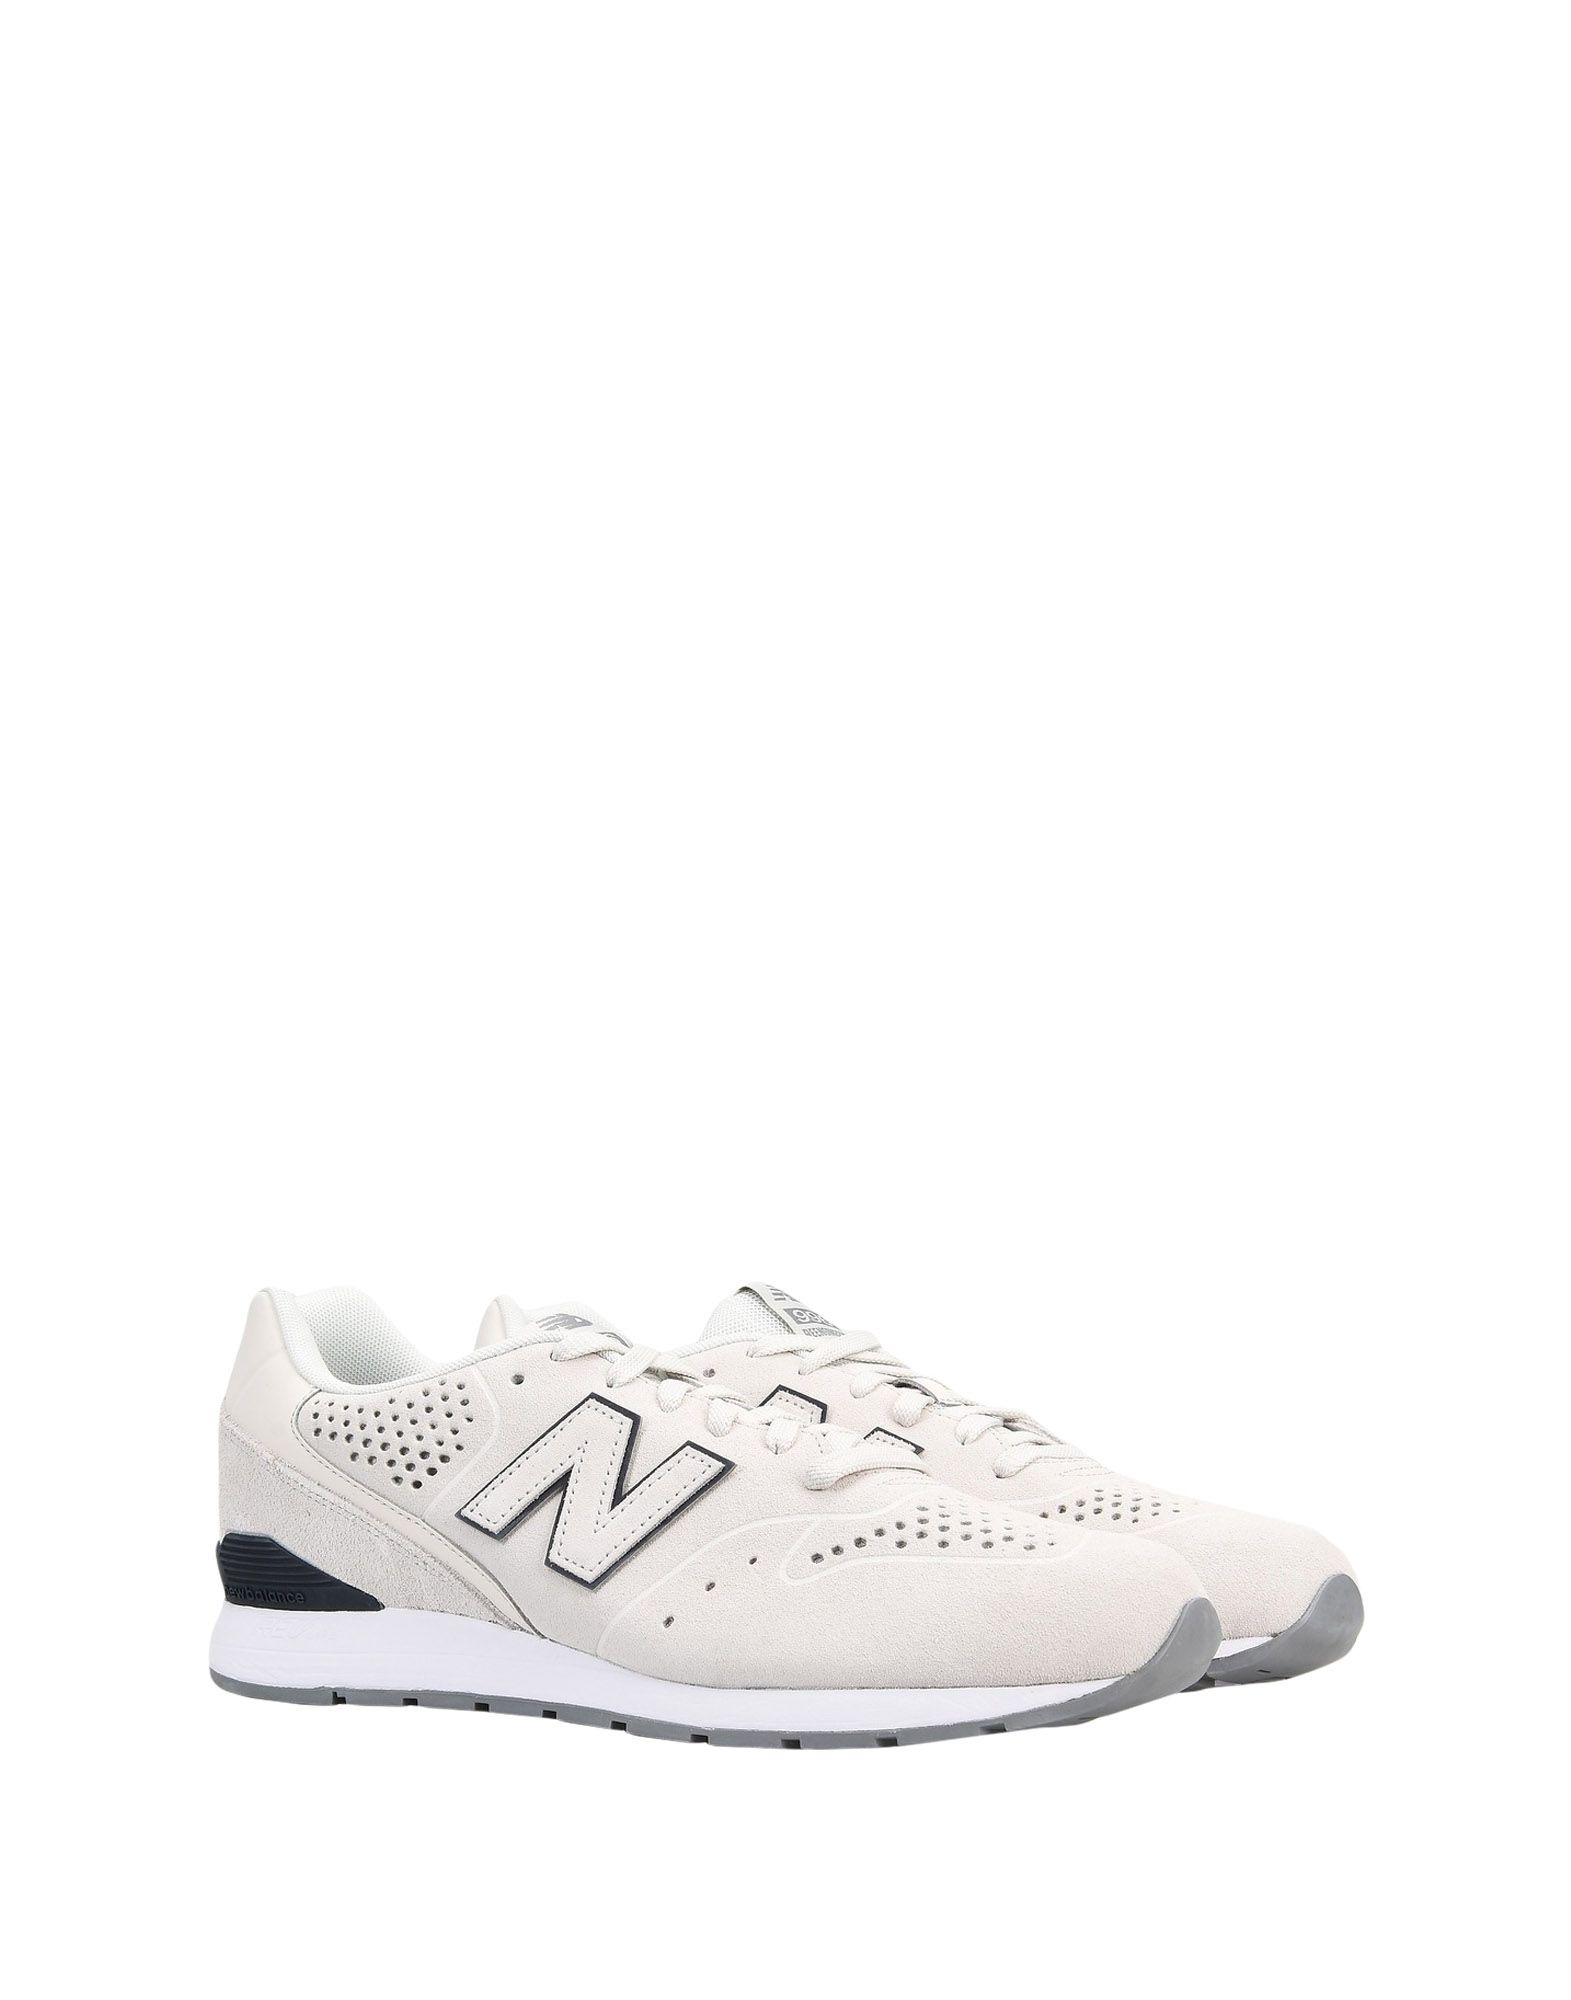 Sneakers New Balance 996 Deconstructed - Homme - Sneakers New Balance sur